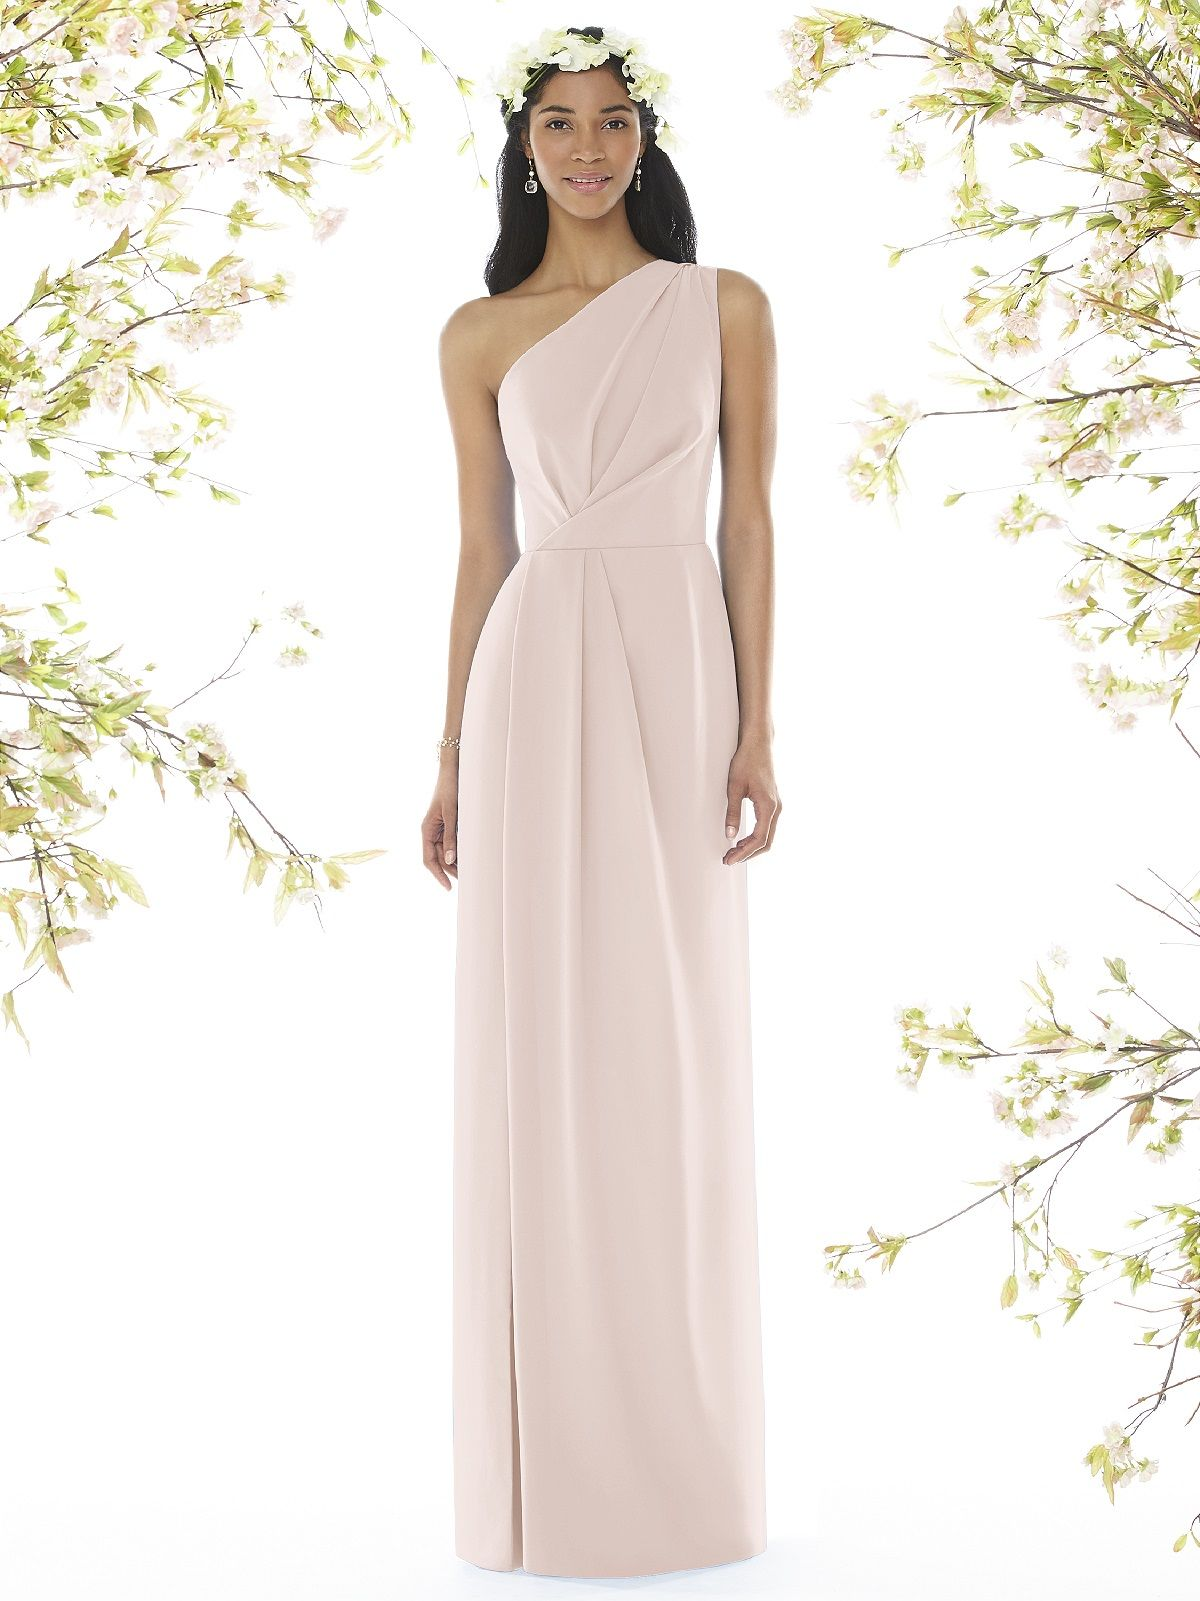 498dab67f97 Full length one shoulder bridesmaid dress in nu-georgette has draped detail  at bodice and skirt. This style is Special Order and ships in weeks.